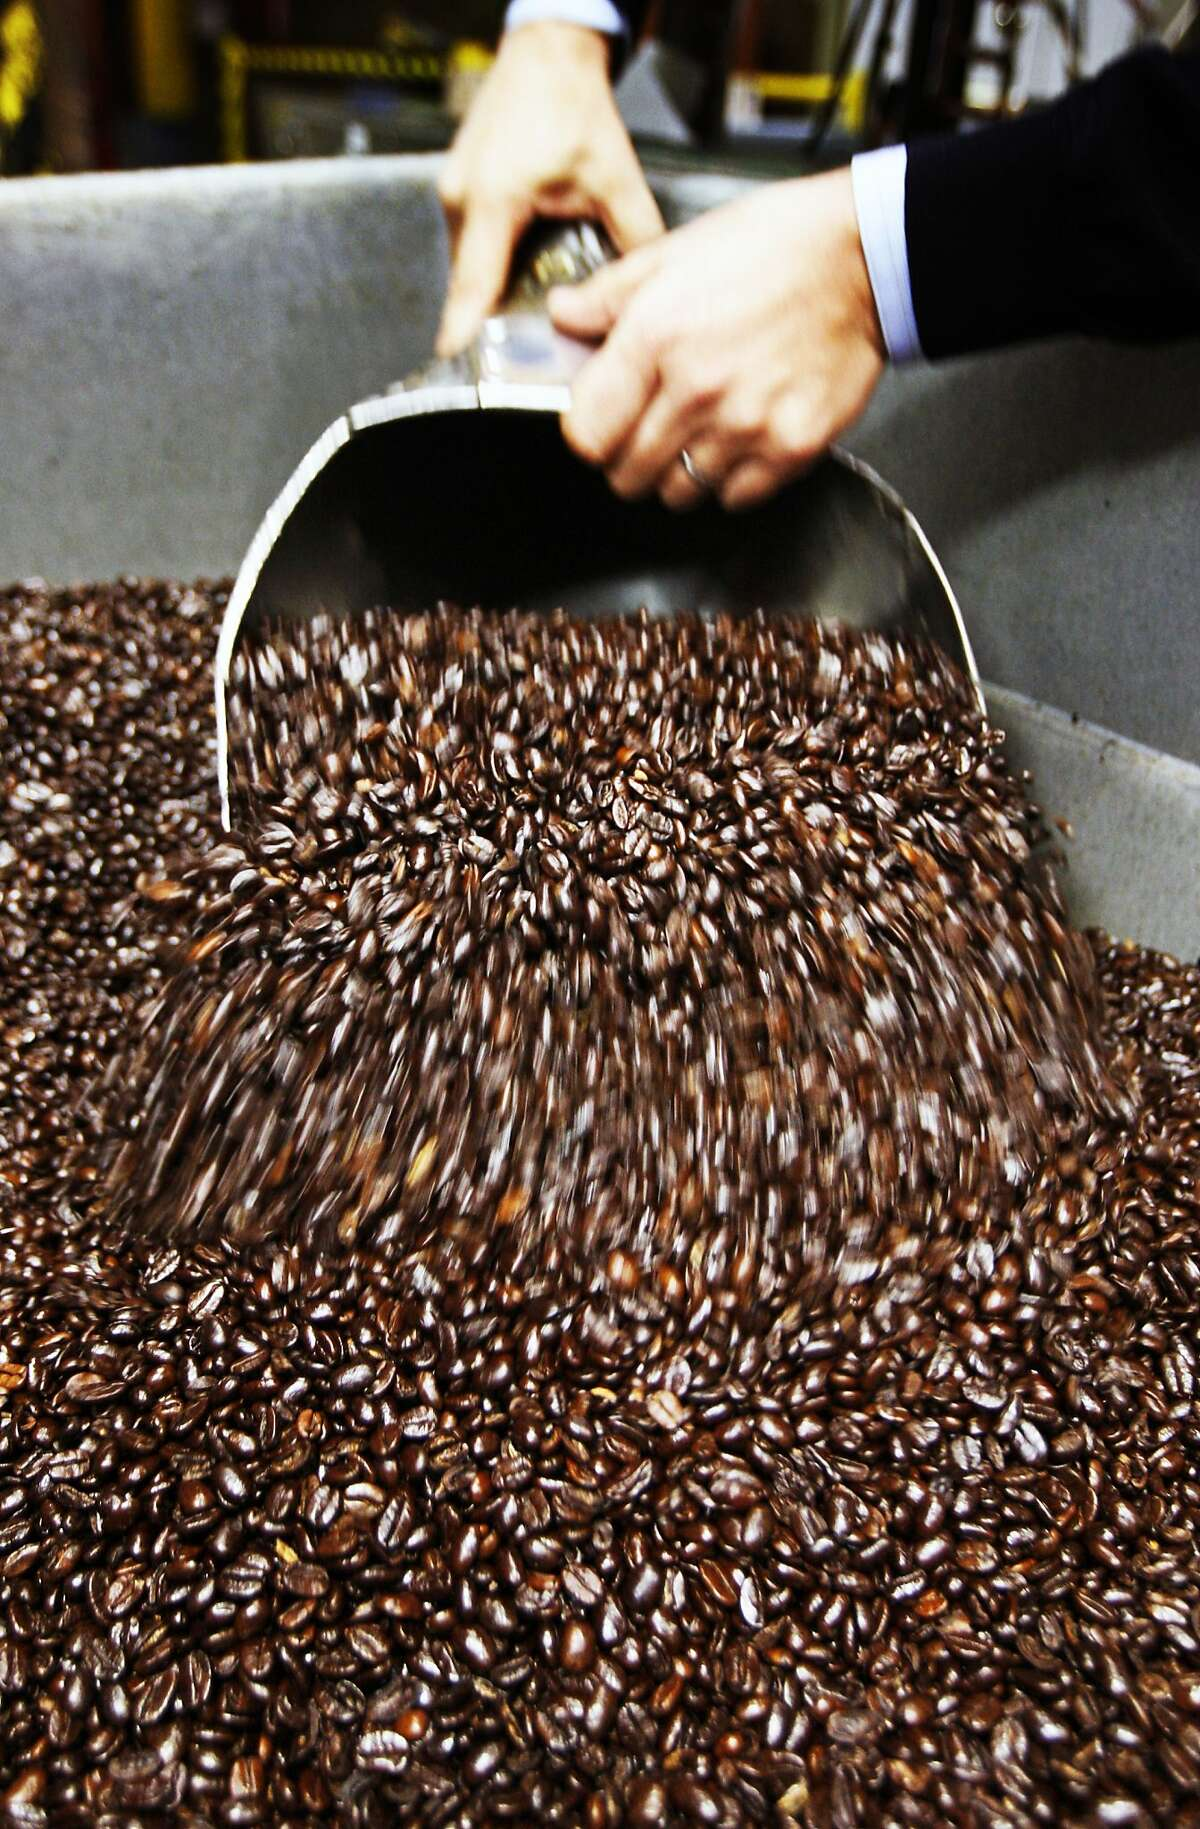 Caffeine is ubiquitous in coffee beans and the idea that the substance can be addictive is hardly new.